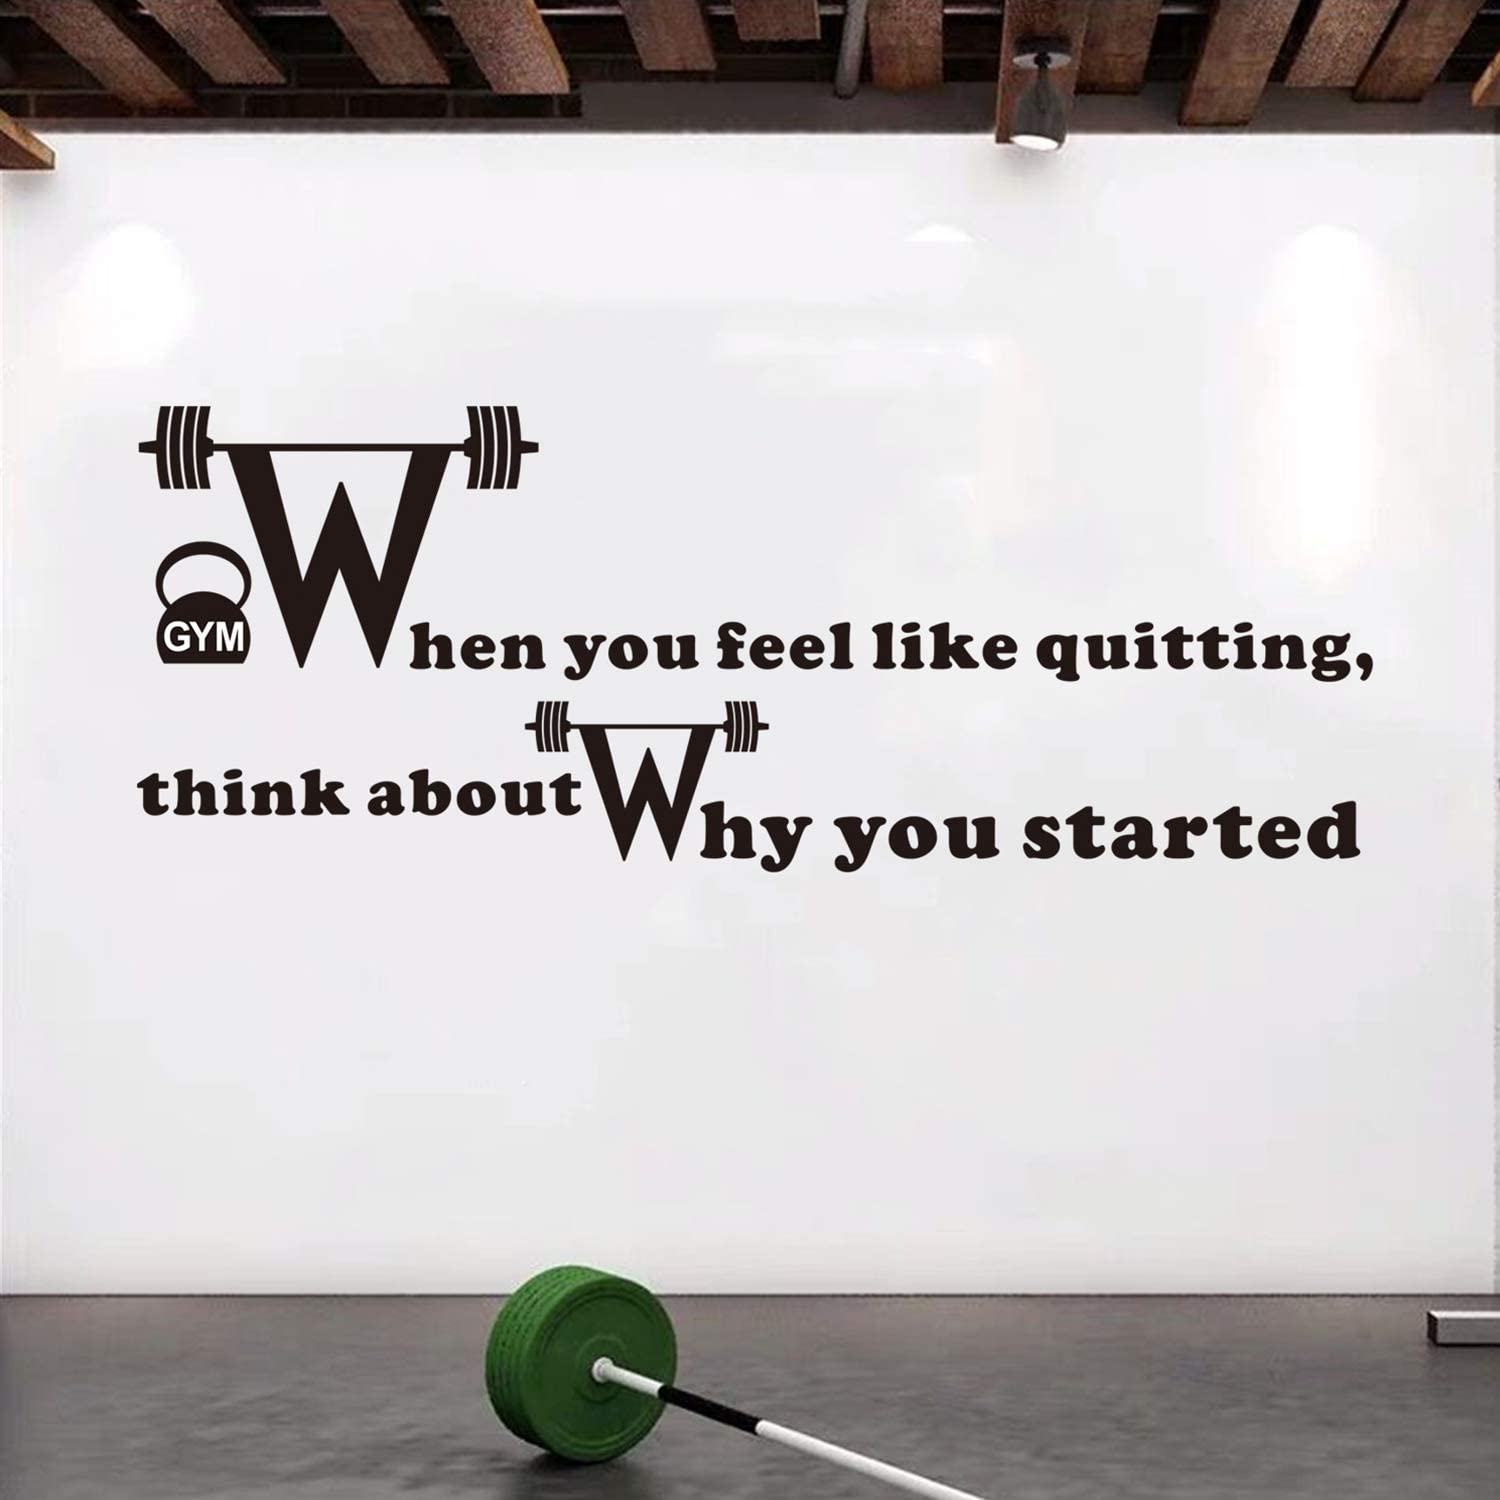 Amazon Com Vodoe Inspirational Wall Decals Gym Wall Decal Motivational Quote Fitness Sports Workout Art Home Indoor Exercise Decor Vinyl Stickers When You Feel Like Quitting Think About Why You Started 24 X9 Home